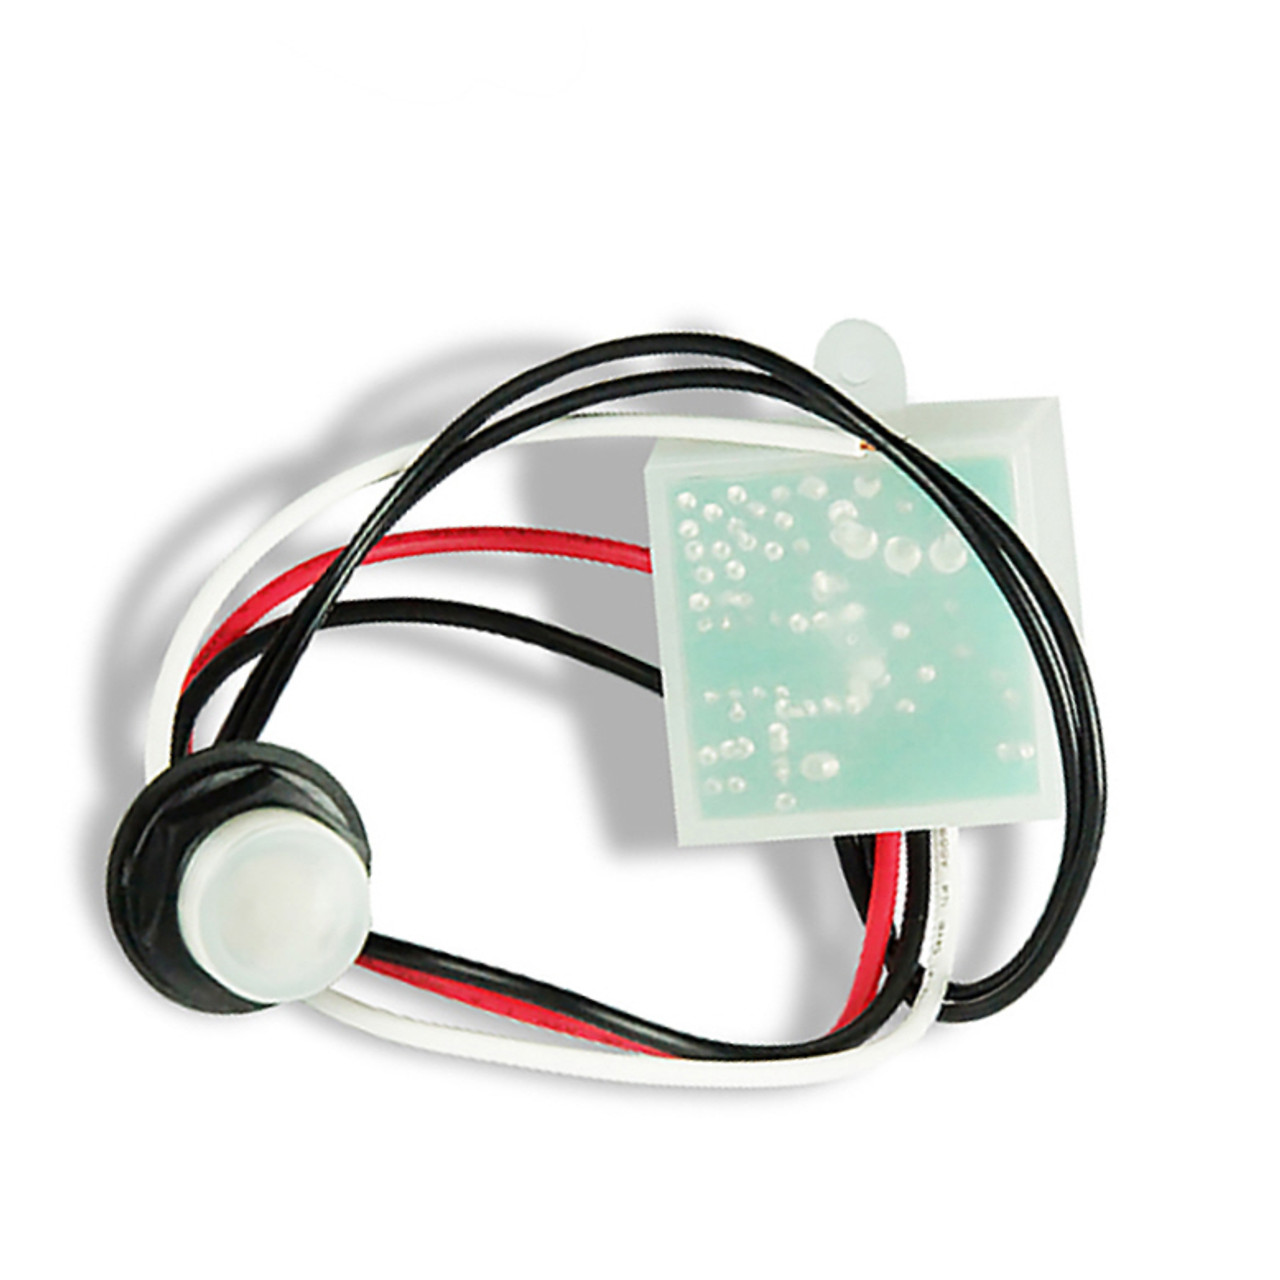 12vdc 24vdc dusk to dawn photocell switch with remote sensor  explore photocells for led lights